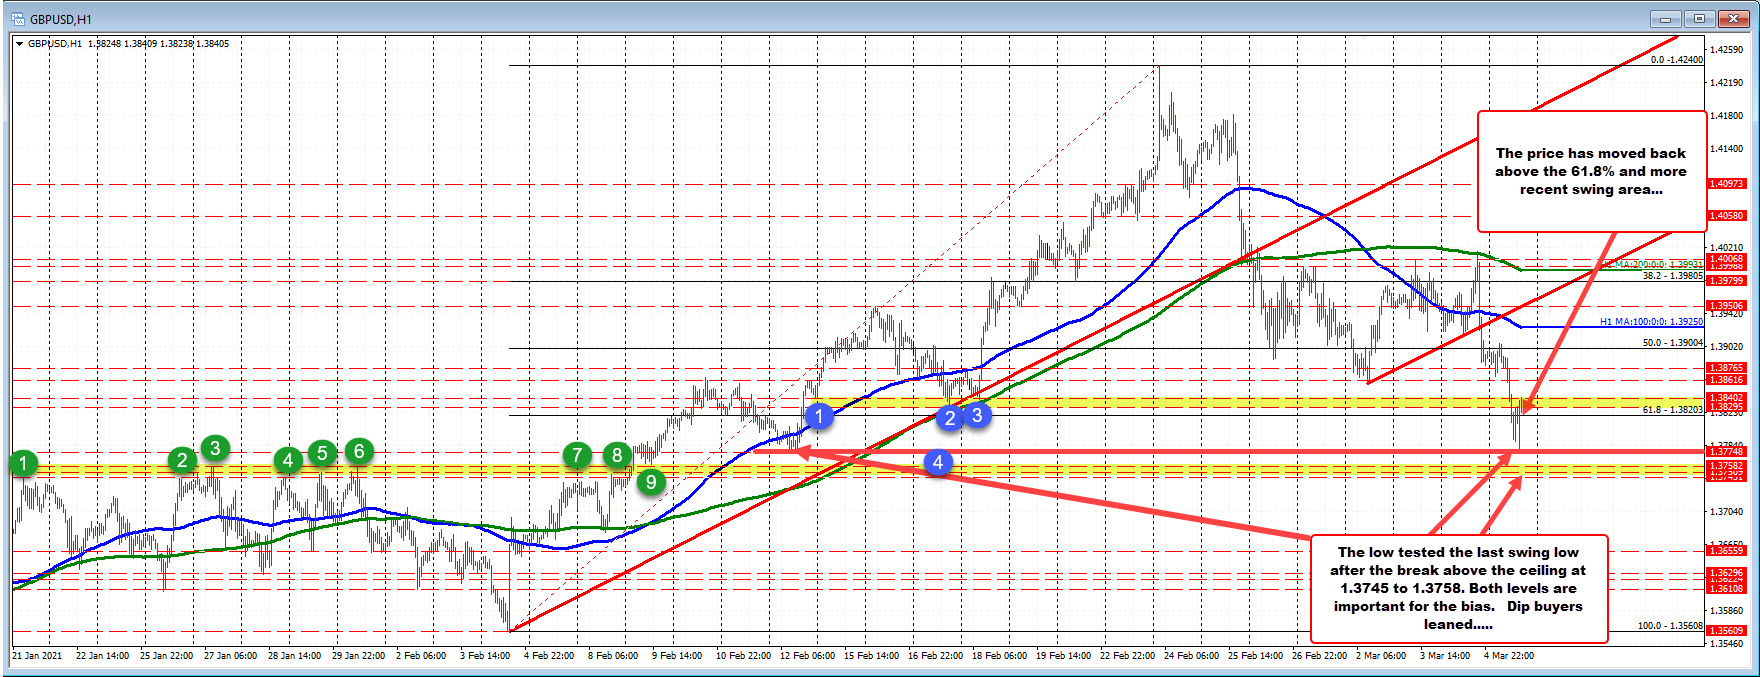 GBPUSD bounces off of support.